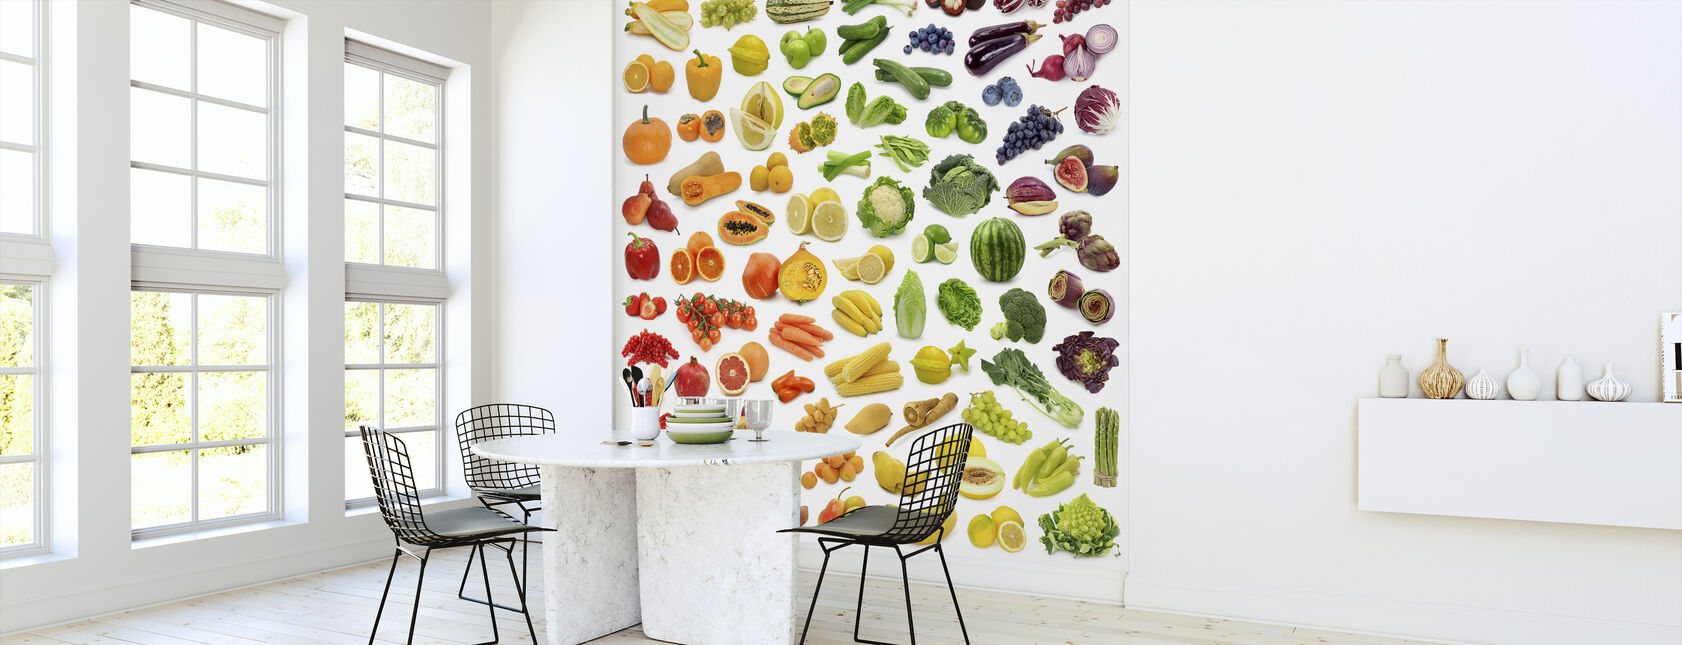 Juicy Fruits - Wallpaper - Kitchen